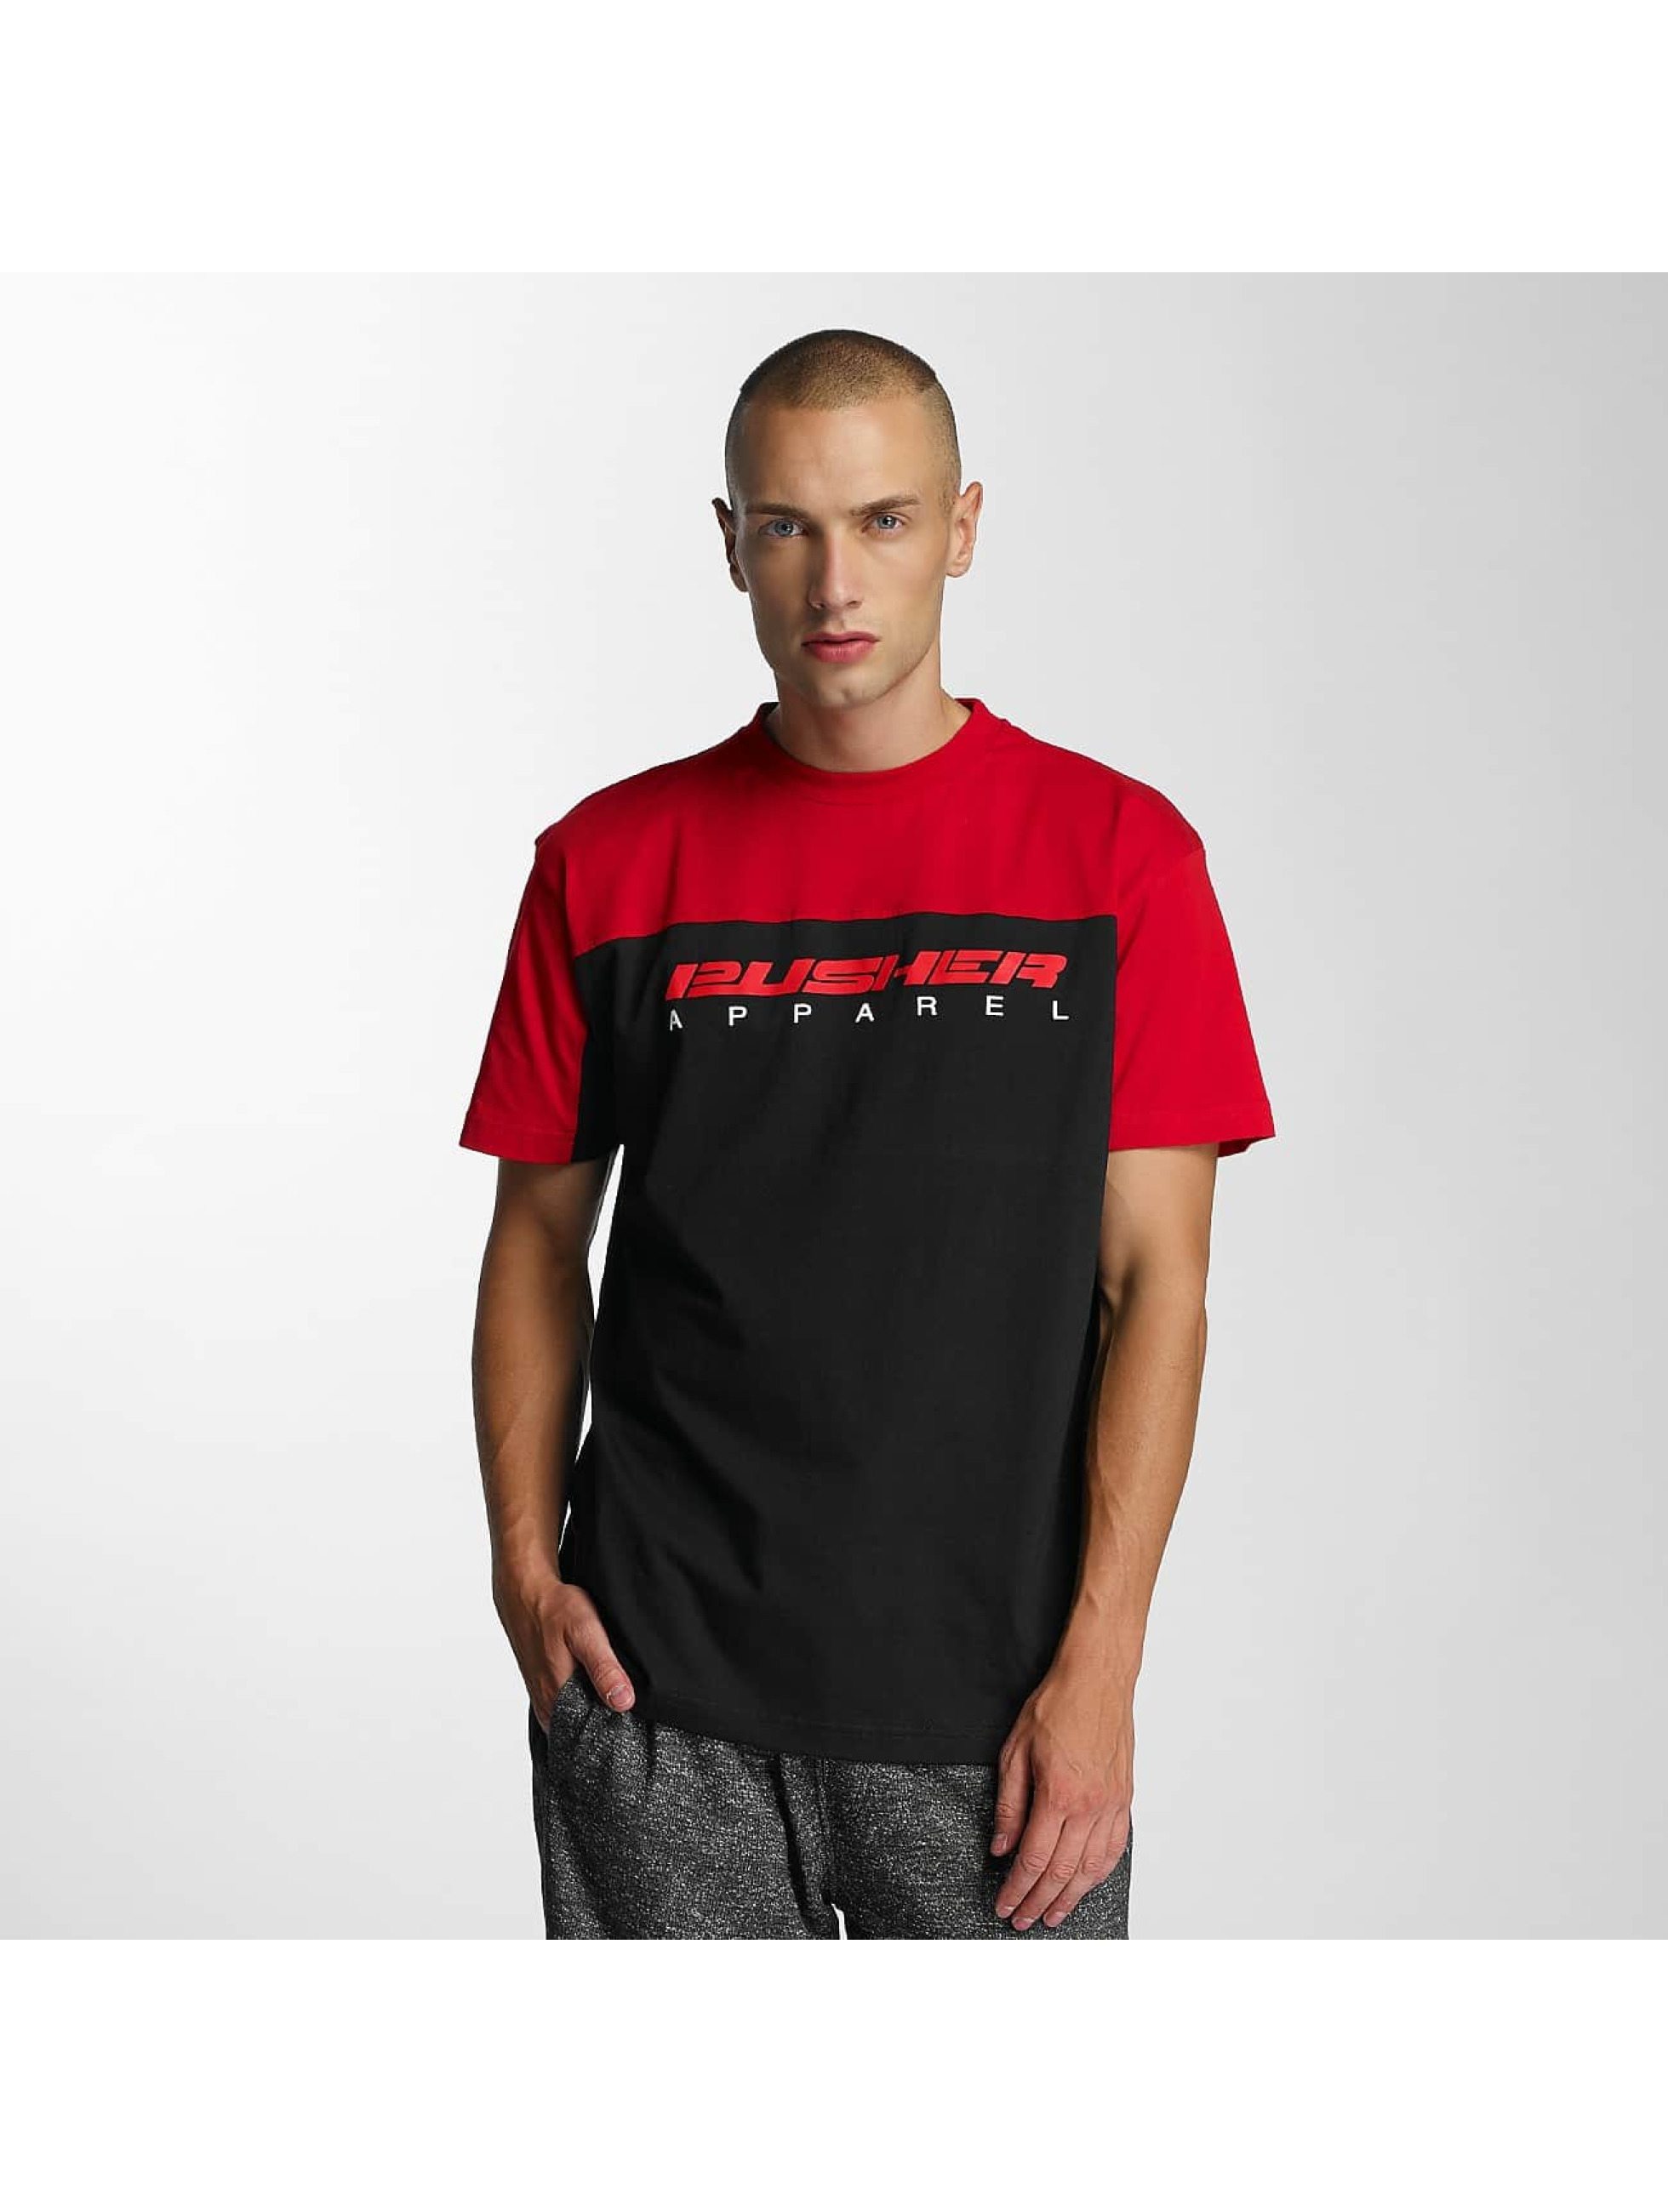 Pusher Apparel T-Shirt Apparel 137 Riot black